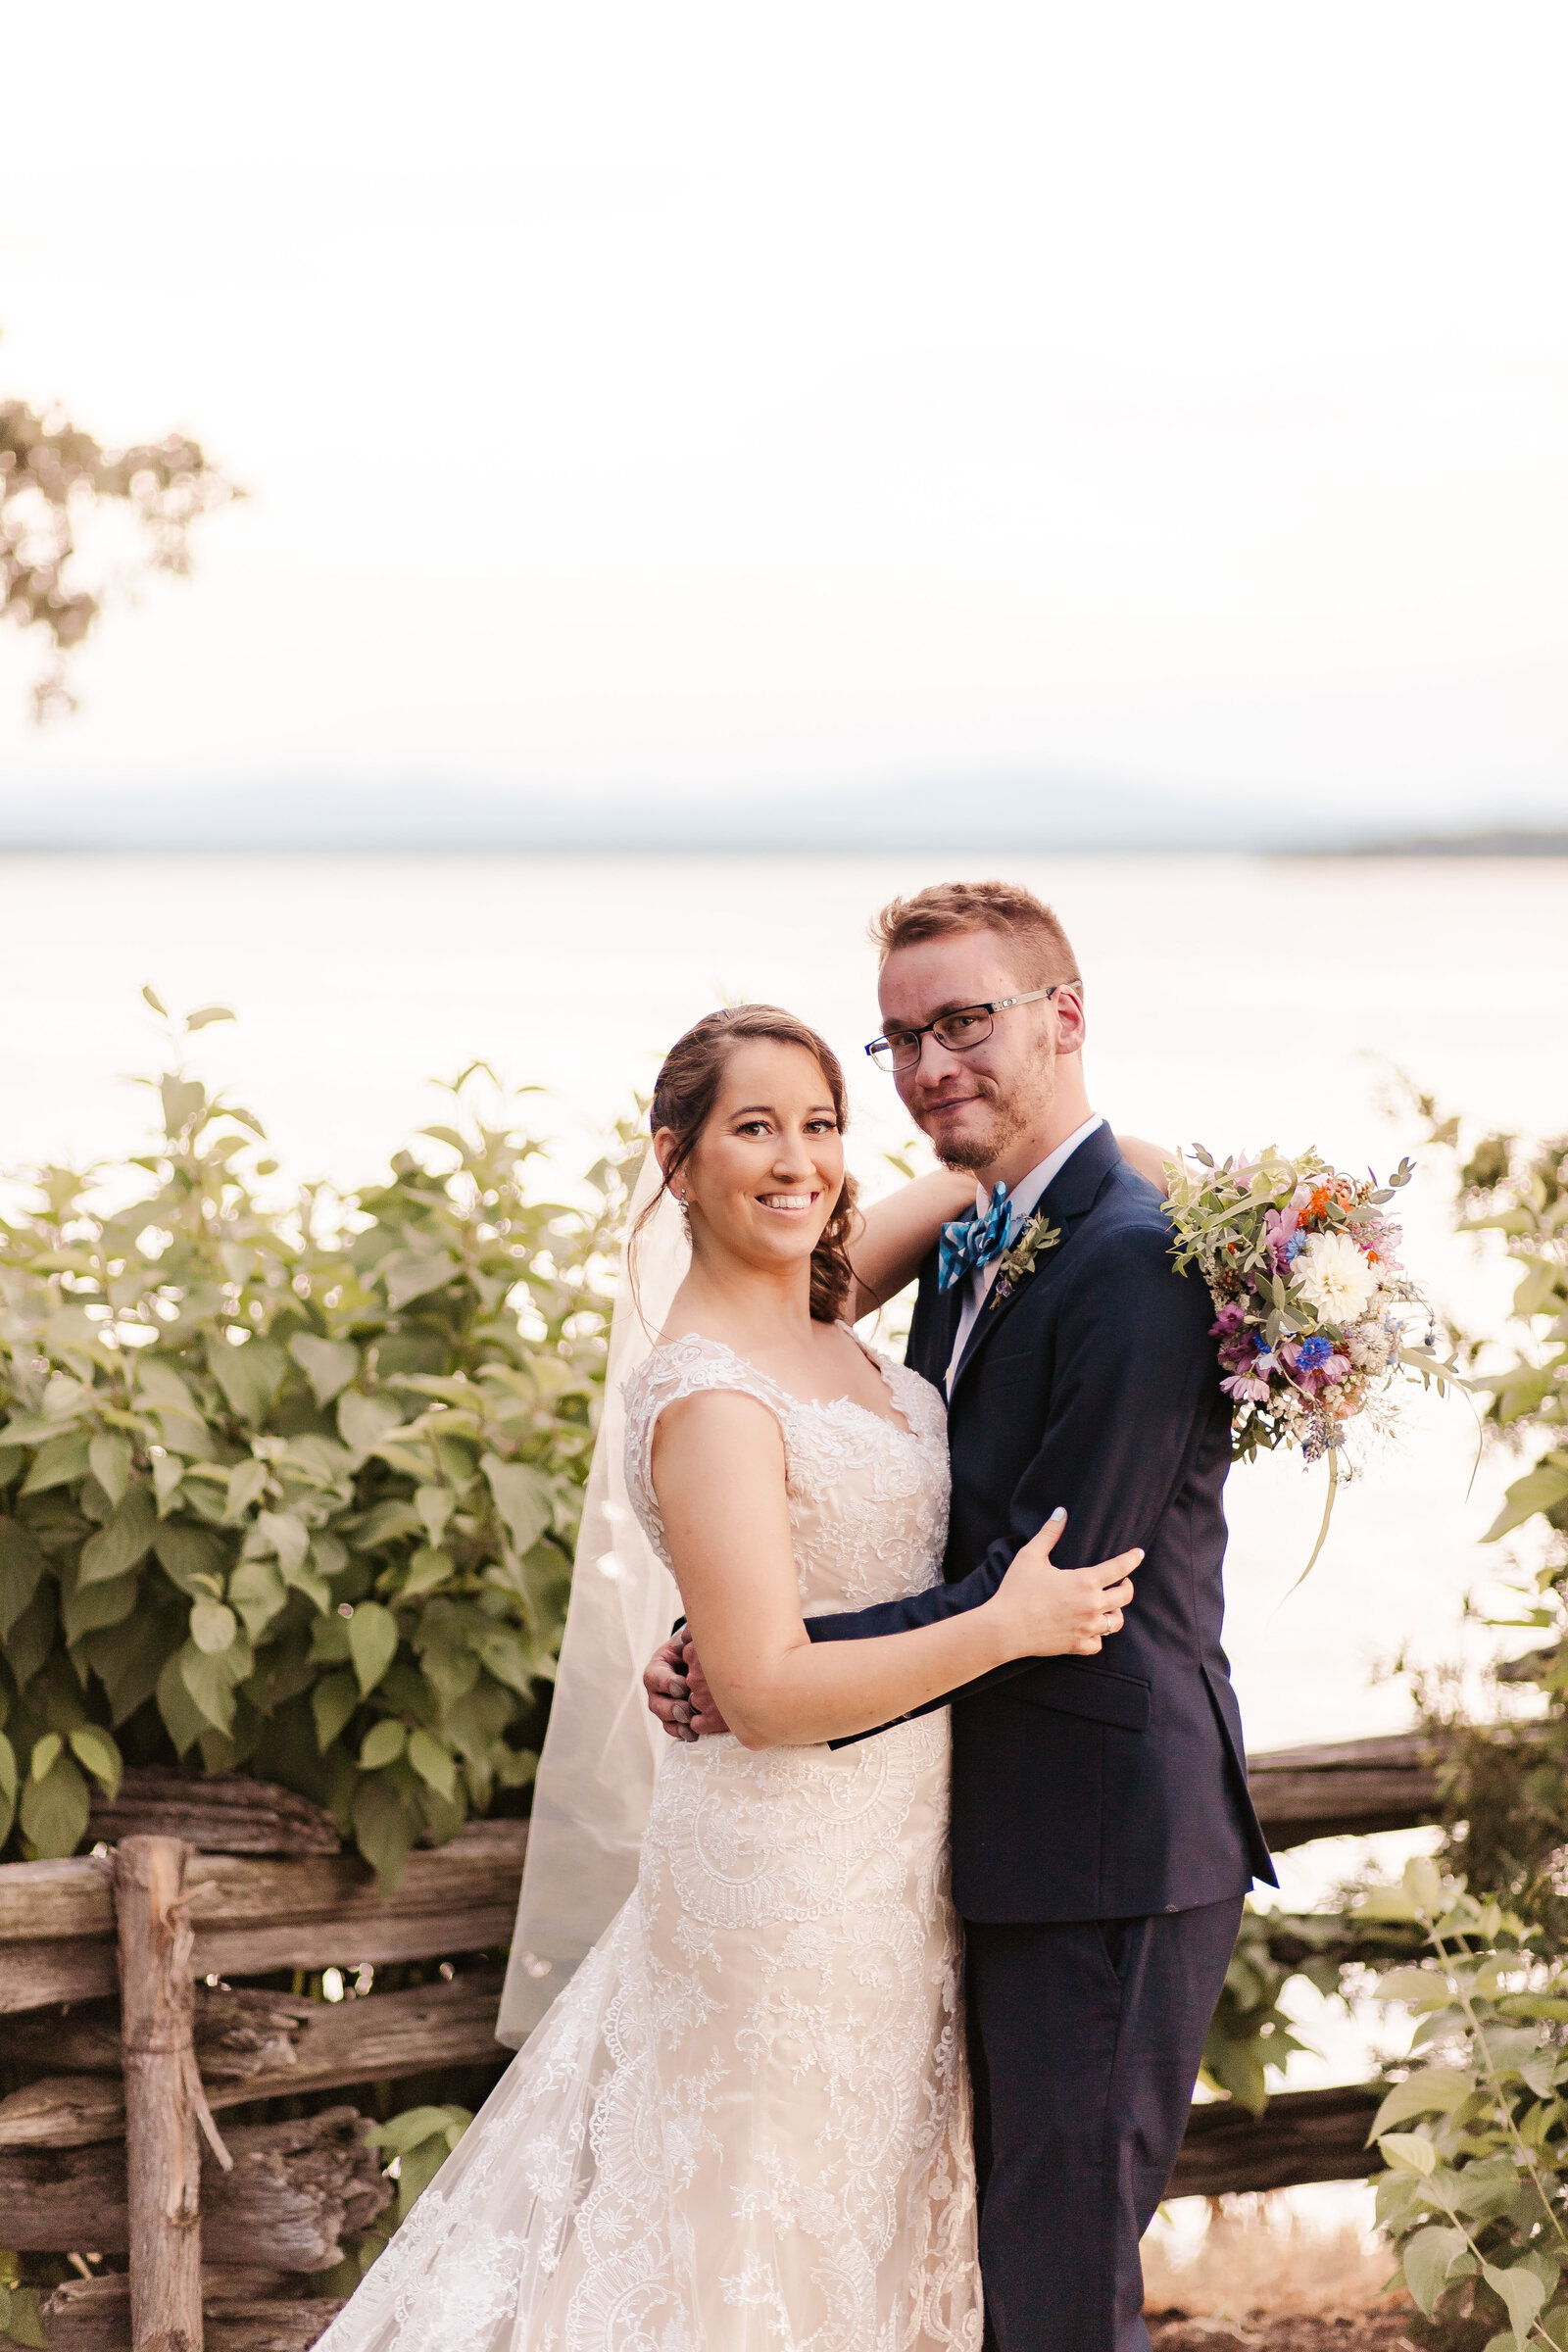 A Rustic Inspired Wedding at Ferry Watch (226 of 273)